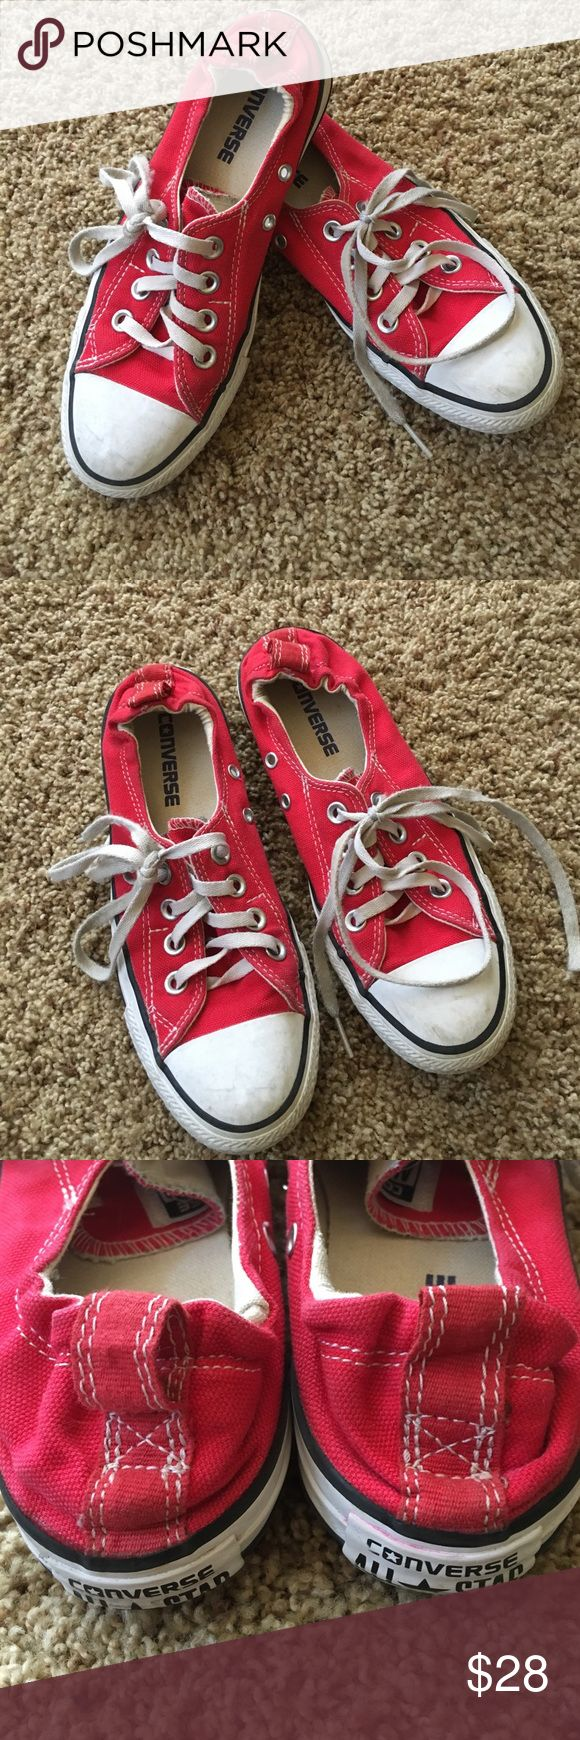 CONVERSE Girls Tennis Shoes - size 4 Red, canvas shoe.  Low tops style.  Tie.  Elastic at the back ankle.  Slightly worn, as shown in the pictures, but still in very good condition. Converse Shoes Sneakers